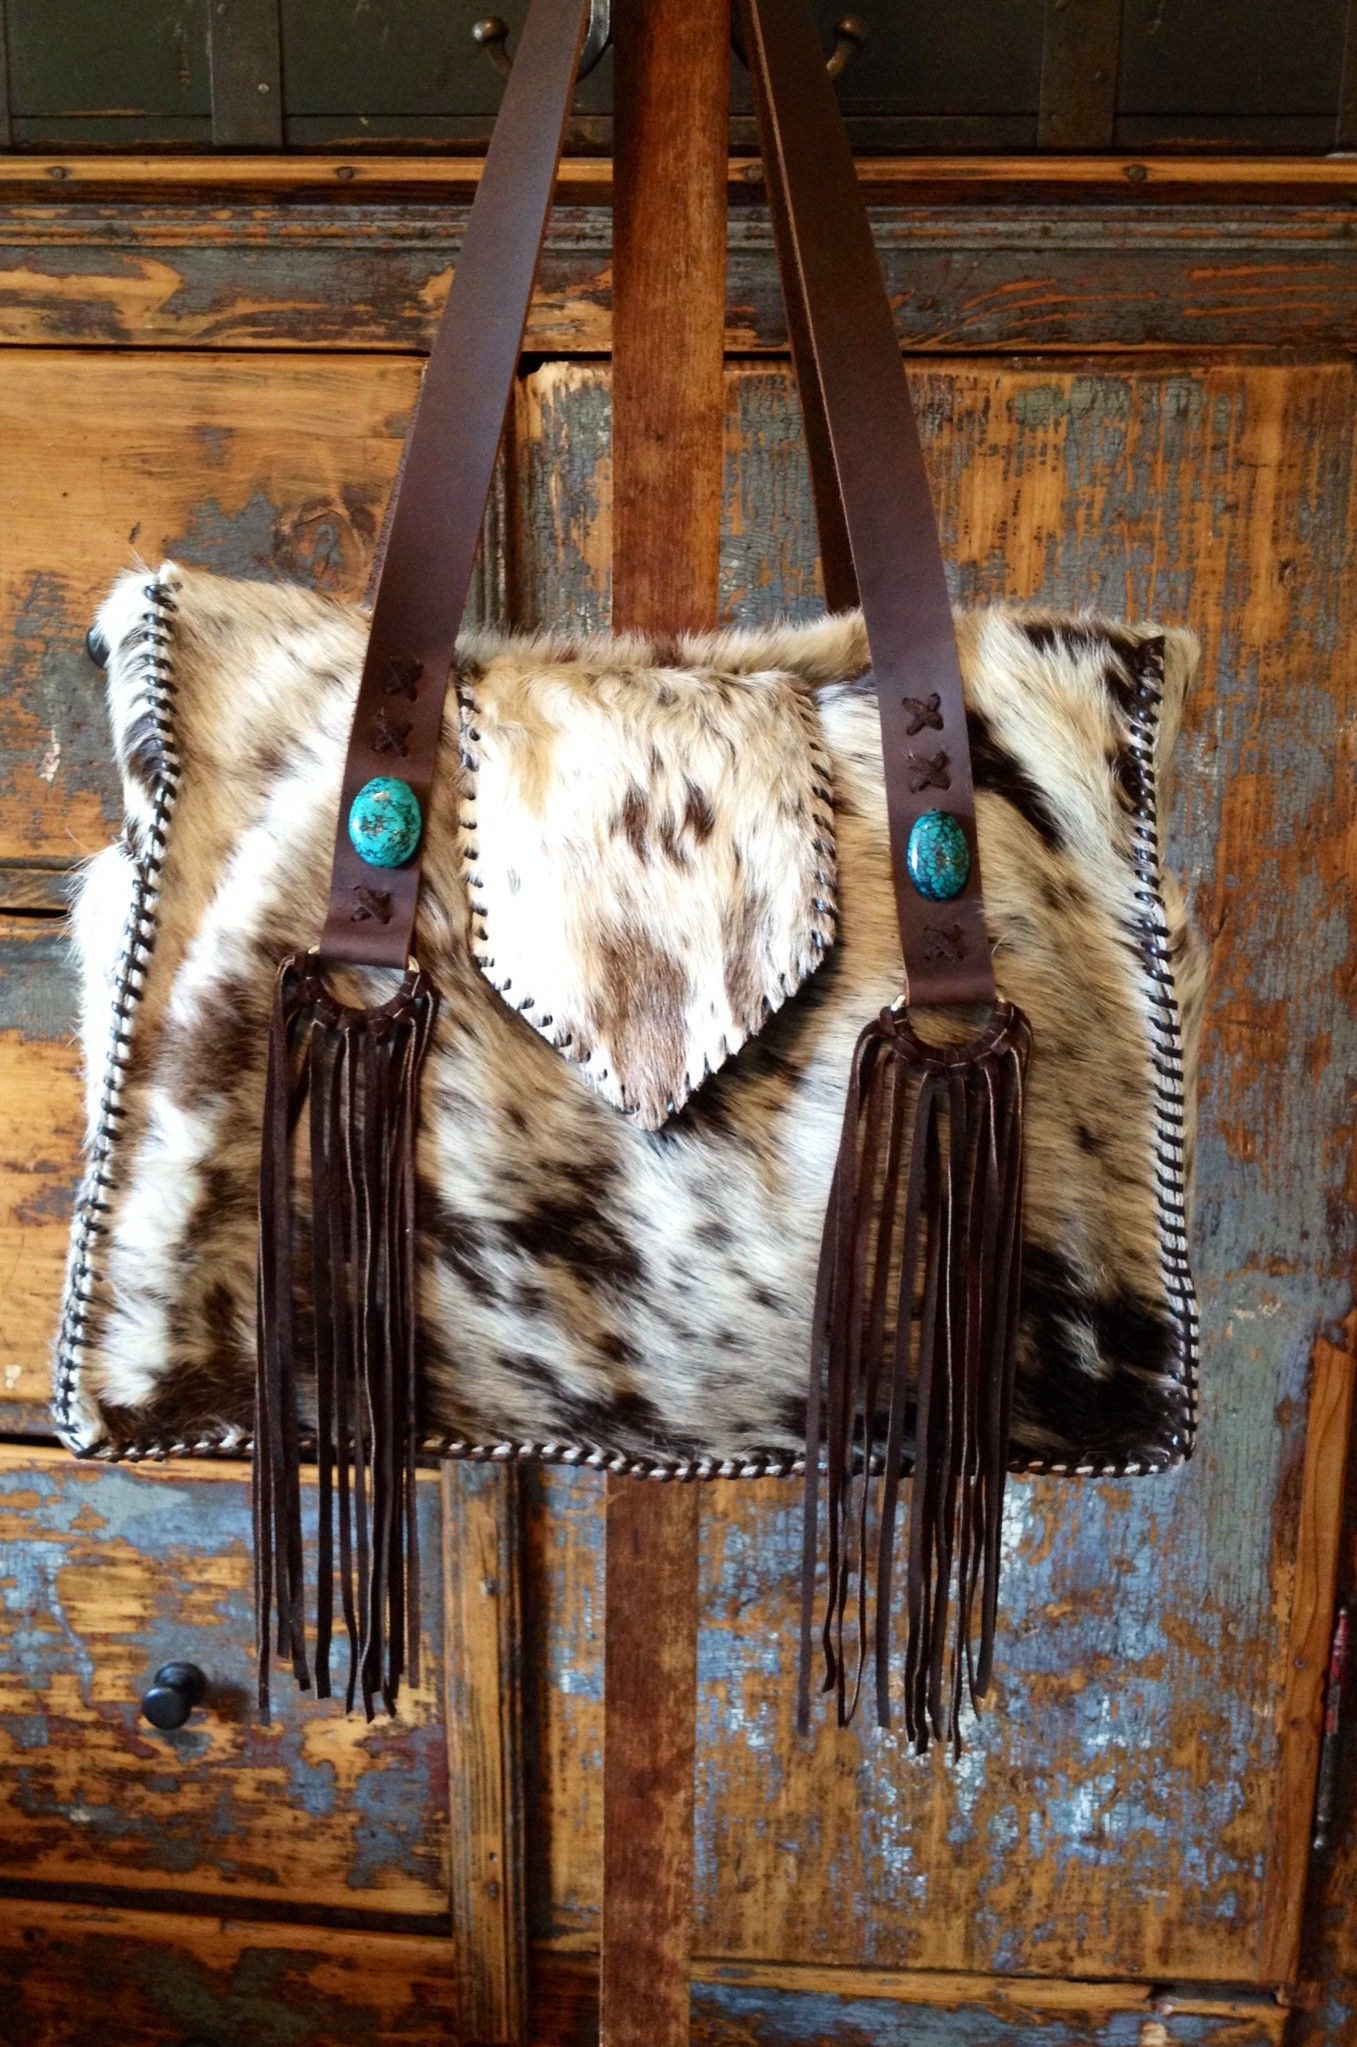 cbbfb9d37 One-of-a-kind, handcrafted, hair-on cowhide purses, totes, diaper bags,  iPad cases, shoulder bags, clutches, and coin purses. Custom orders welcome.